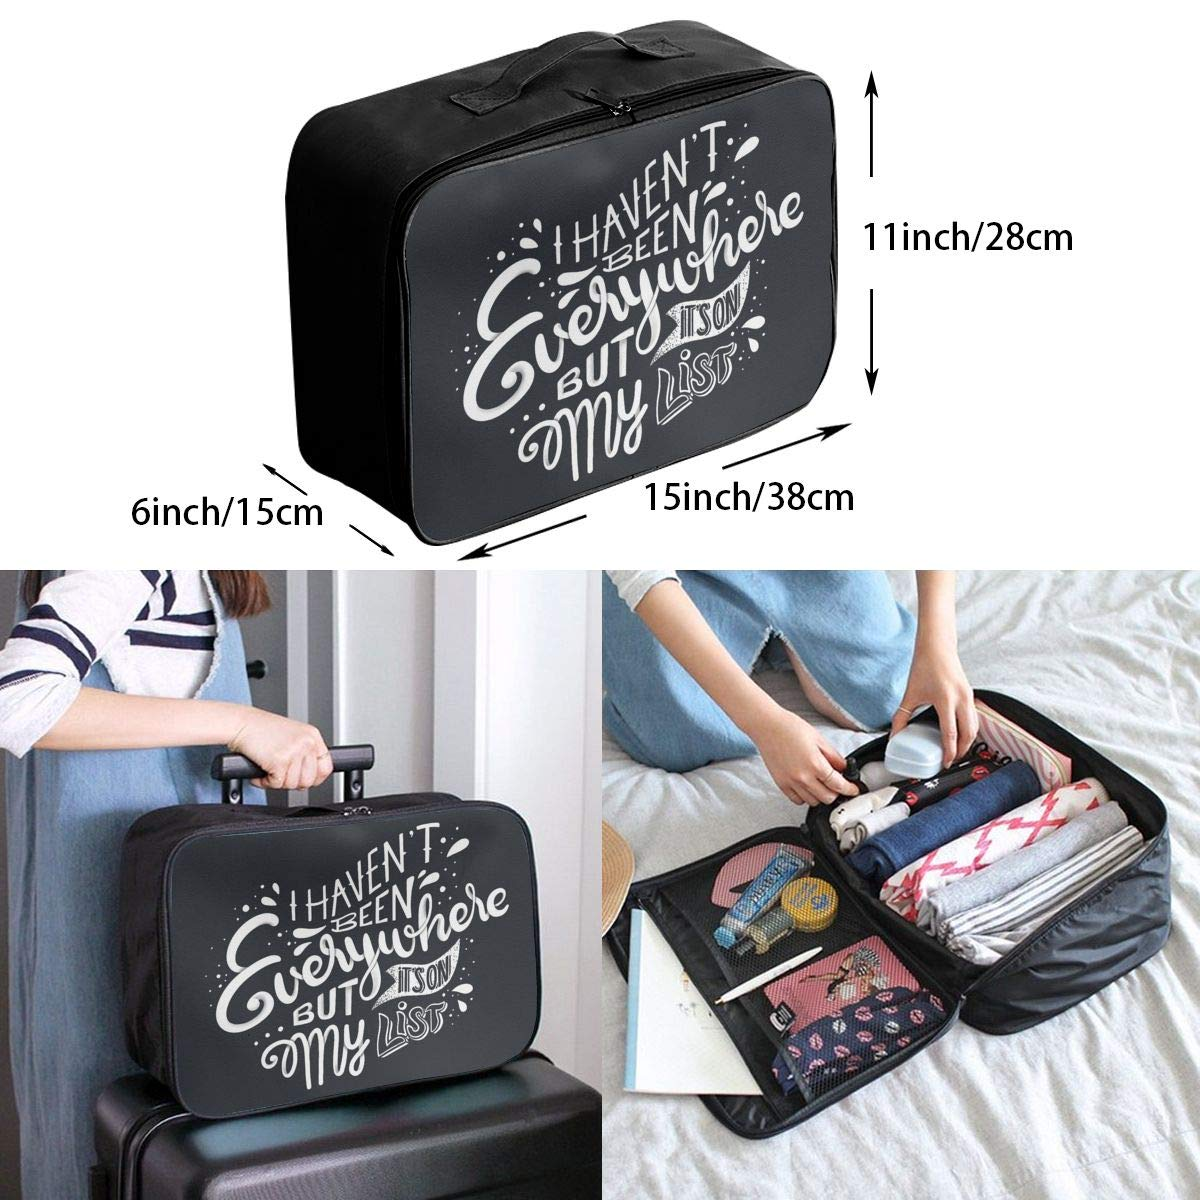 Travel Luggage Duffle Bag Lightweight Portable Handbag My List Large Capacity Waterproof Foldable Storage Tote